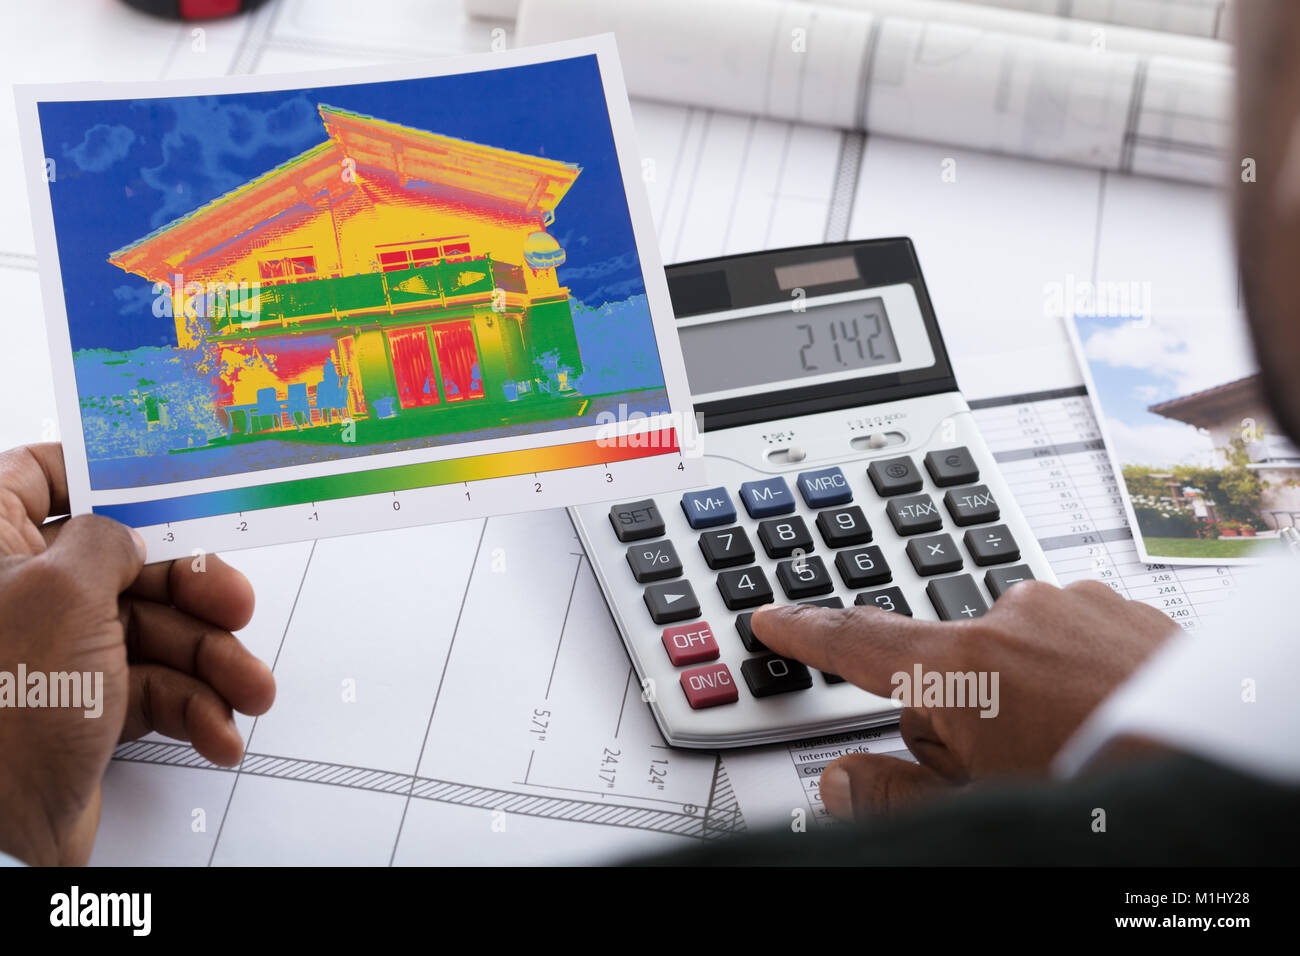 Close-up Of Person Hand Calculating Heat Temperature Using Calculator On Desk Stock Photo